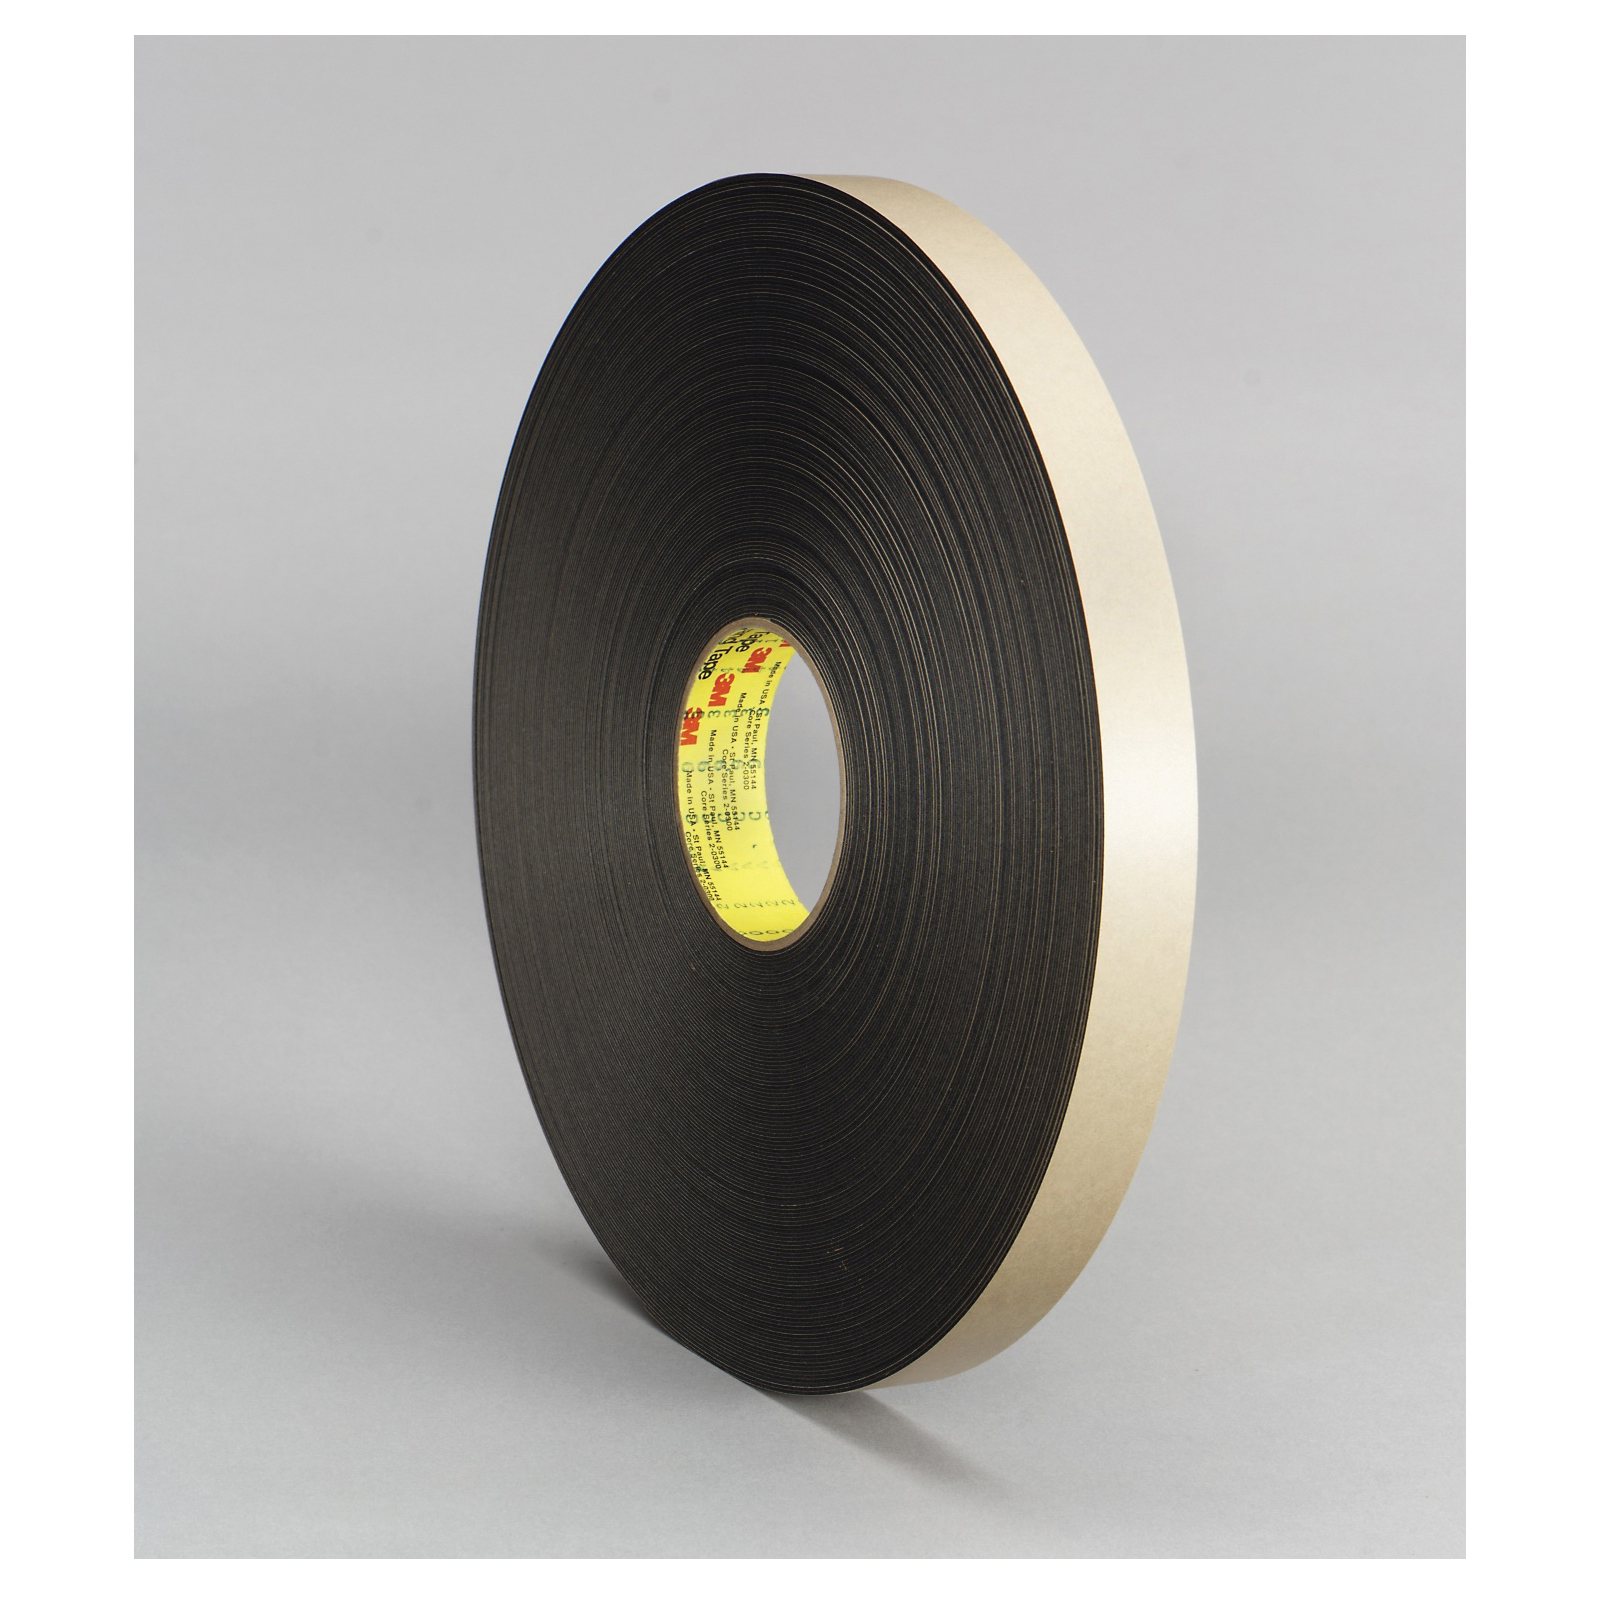 3M™ 021200-30422 Double Coated Tape, 72 yd L x 1/2 in W, 31 mil THK, Acrylic Adhesive, Polyethylene Foam Backing, Black